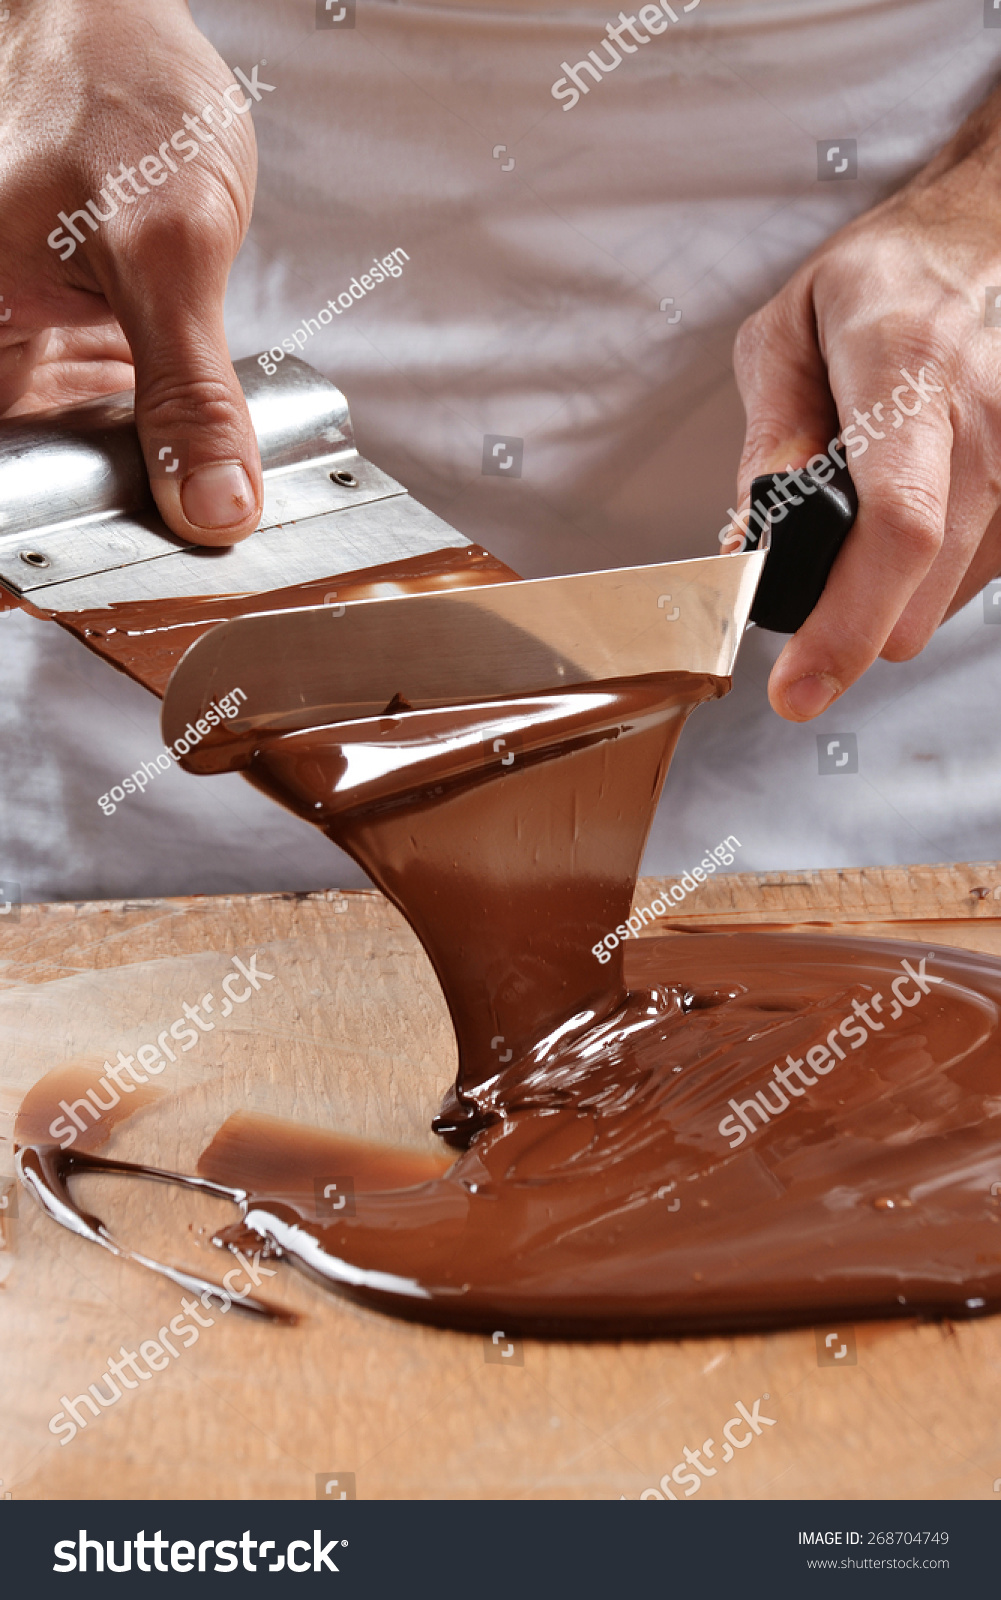 how to cook with chocolate